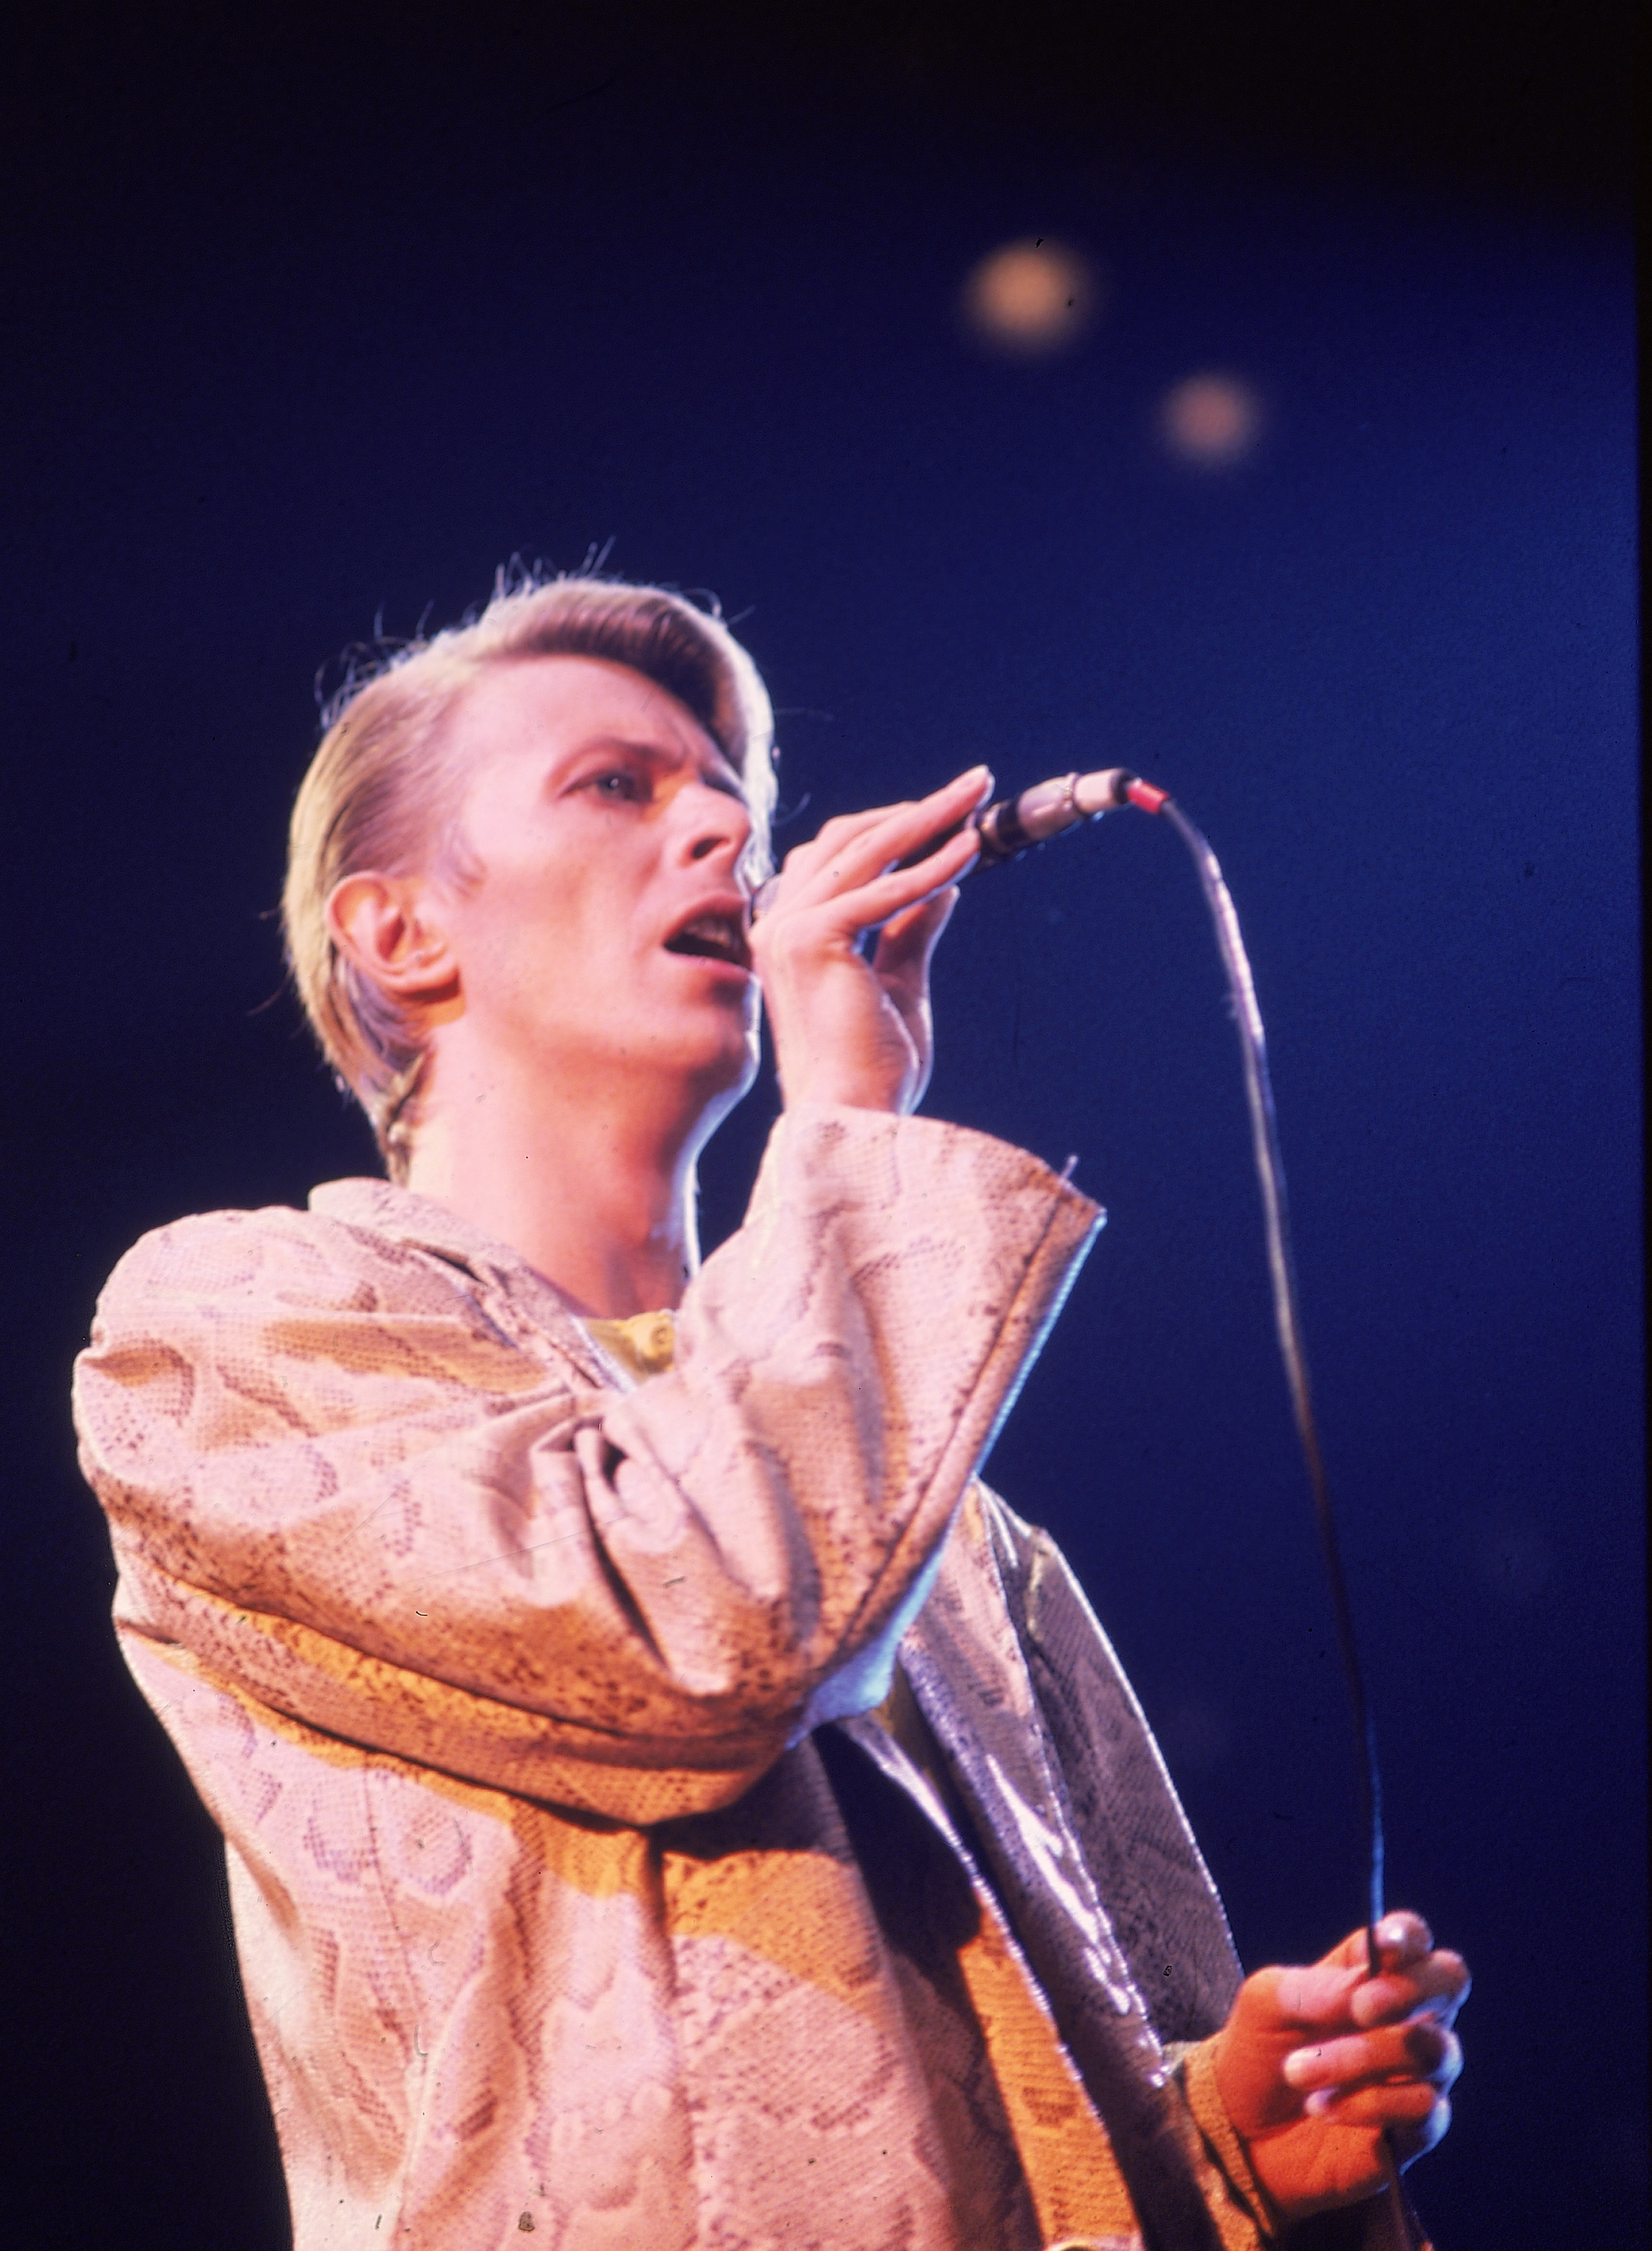 David Bowie at Madison Square Garden in New York in May 1978. (AP Photo/Brian Killigrew)